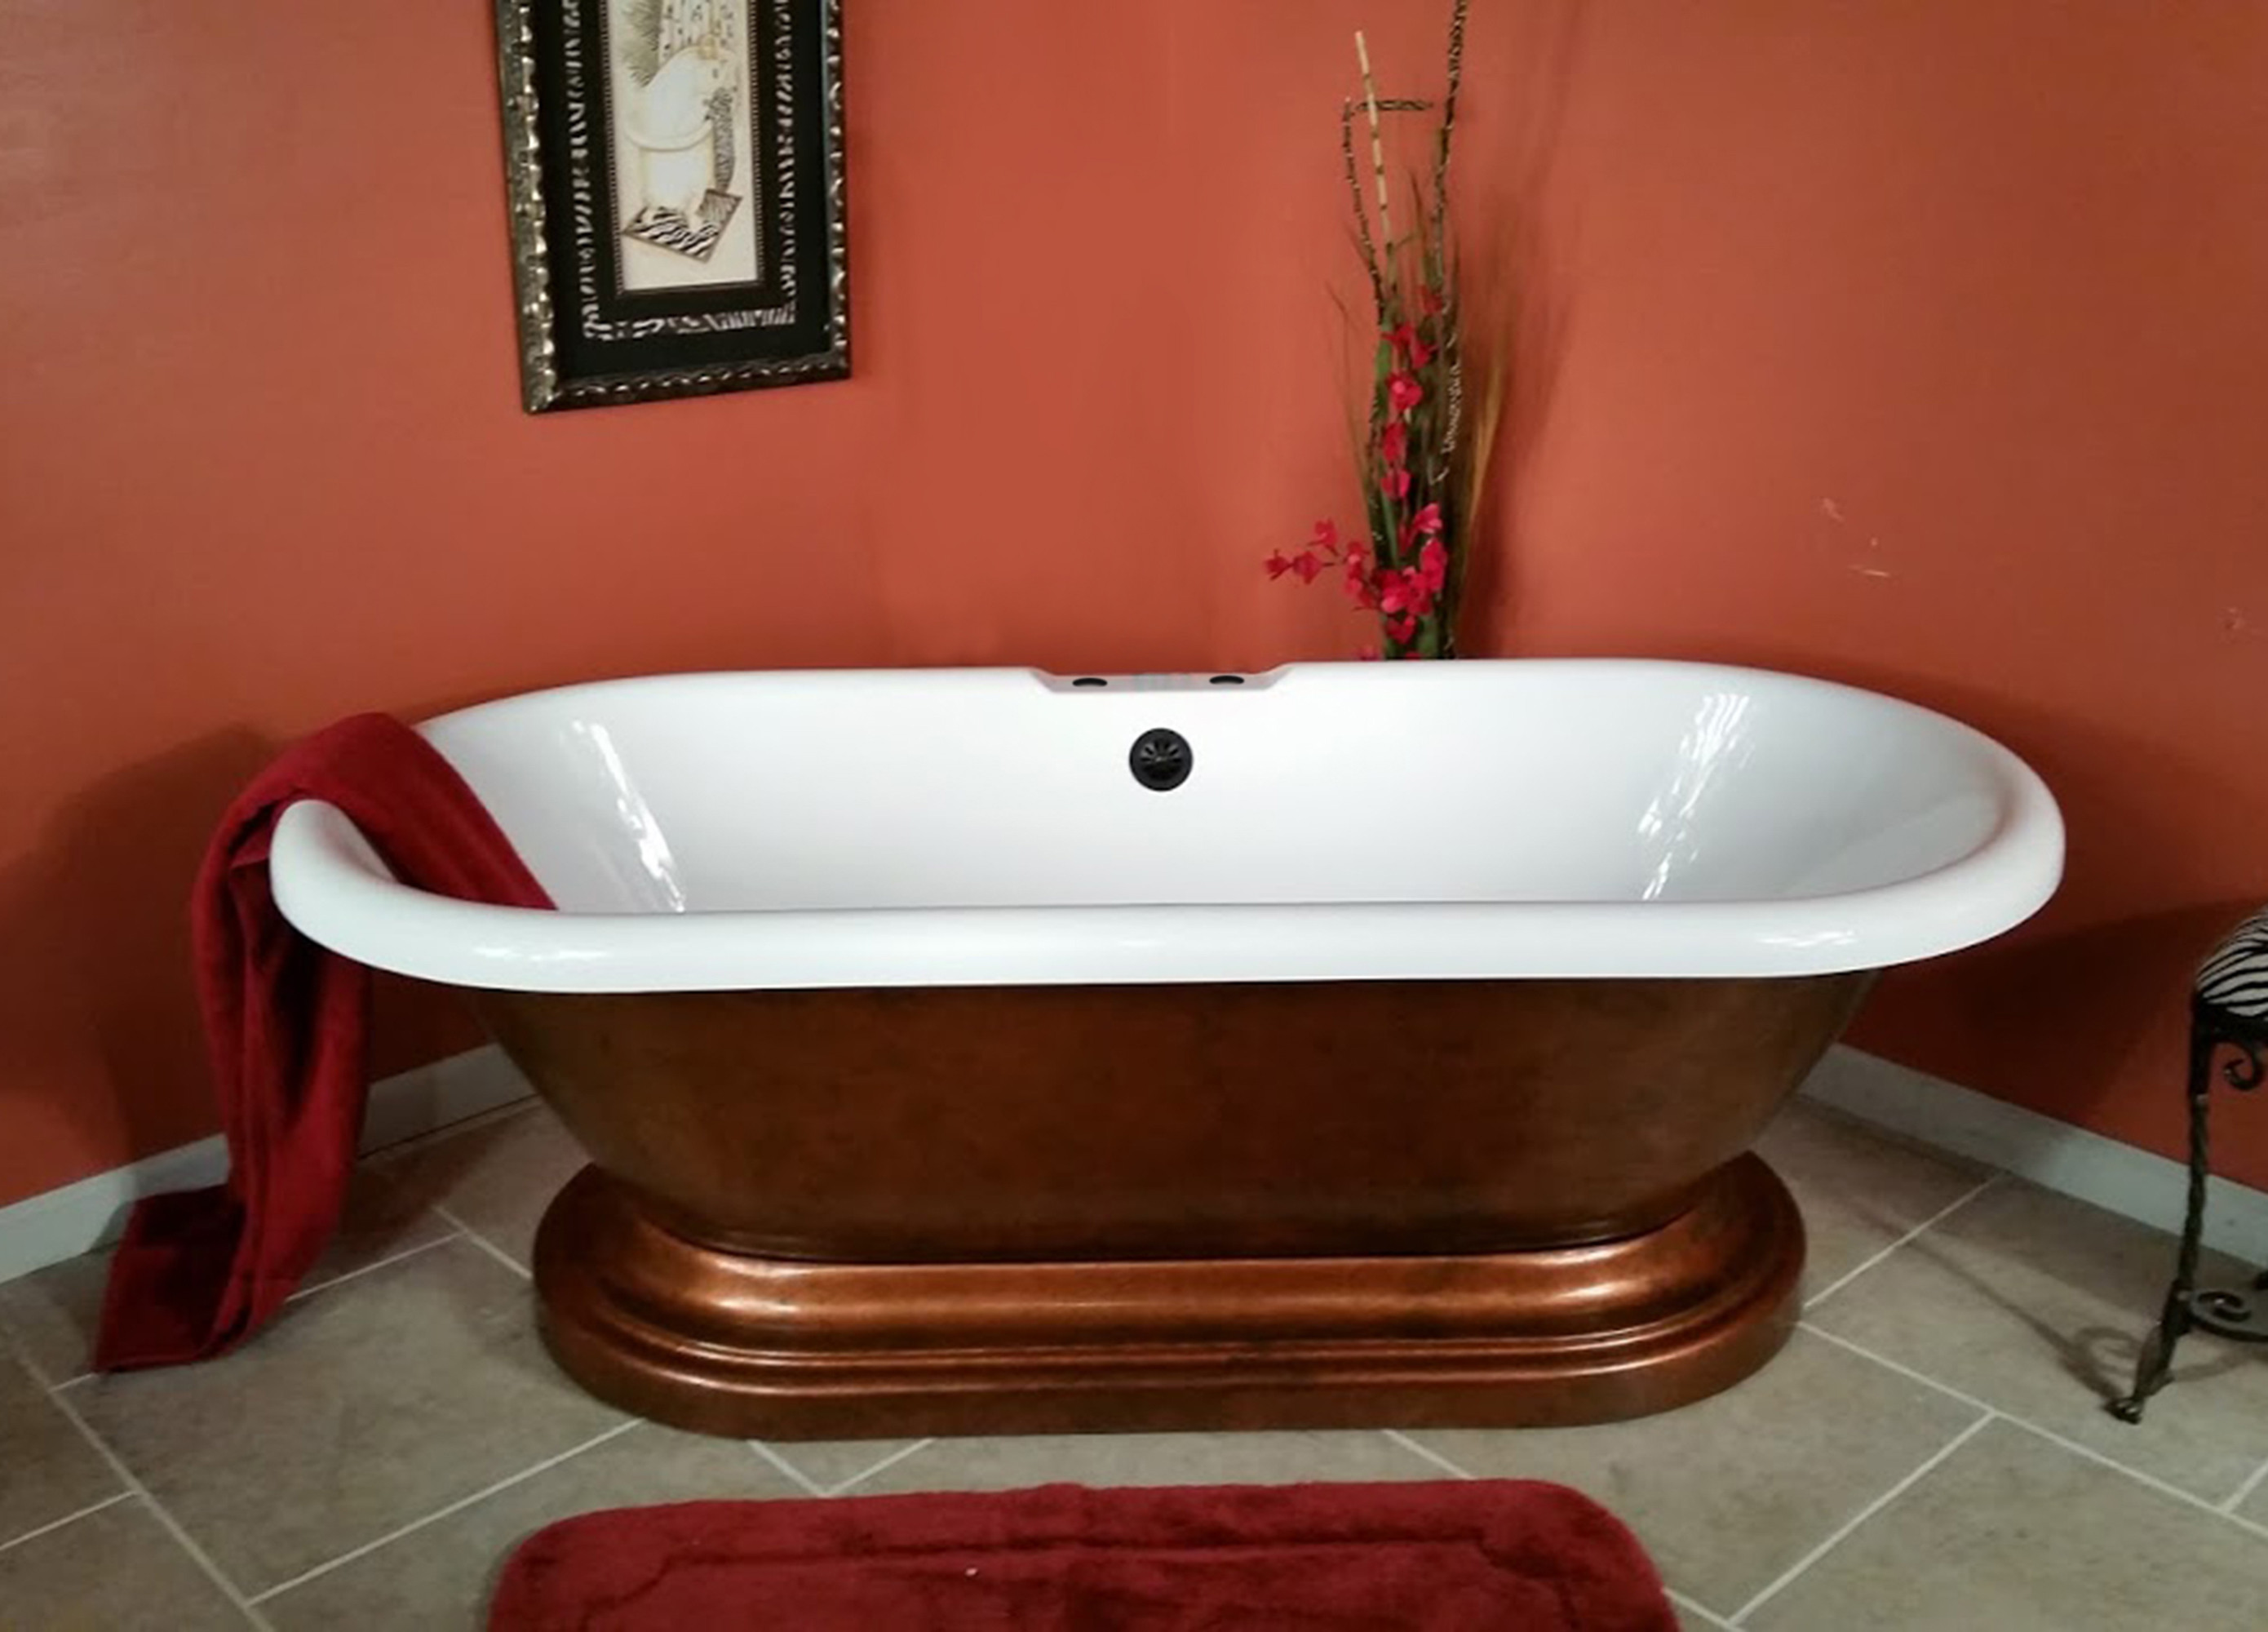 Cambridge ADE60-PED-CB Acrylic Double Ended Tub On Pedestal With Deck Holes